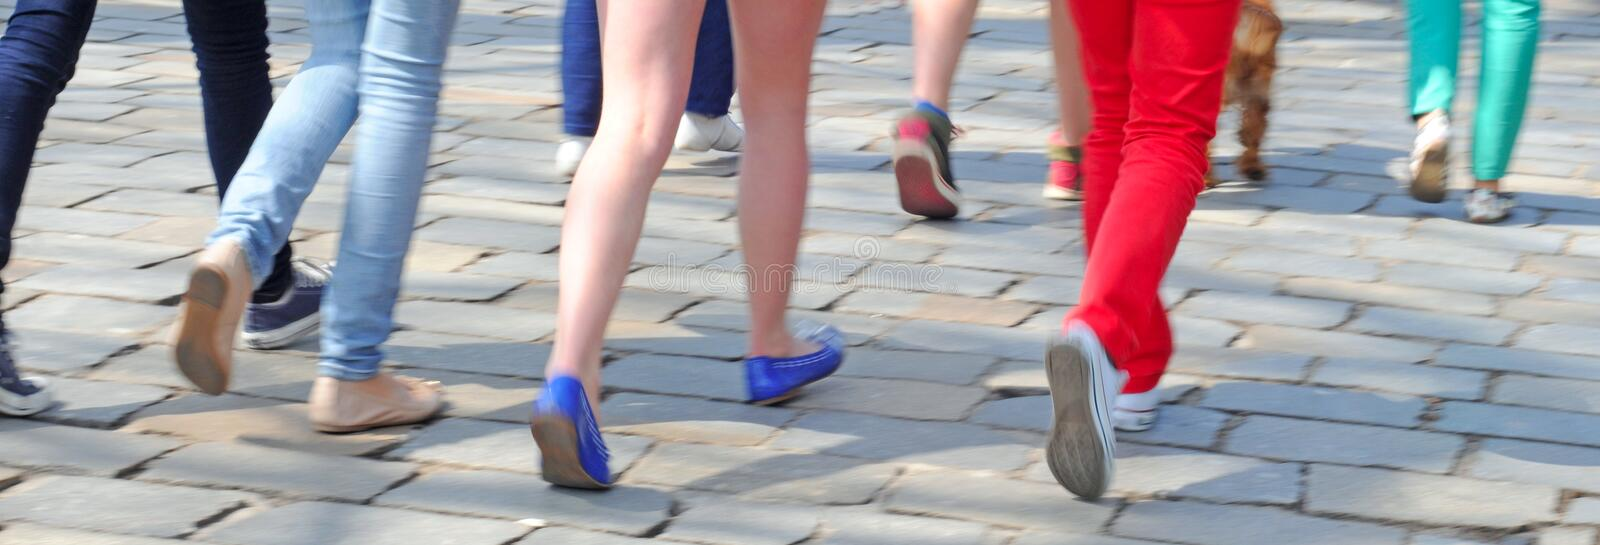 Walking. In summertime, intentional motion blur royalty free stock photos